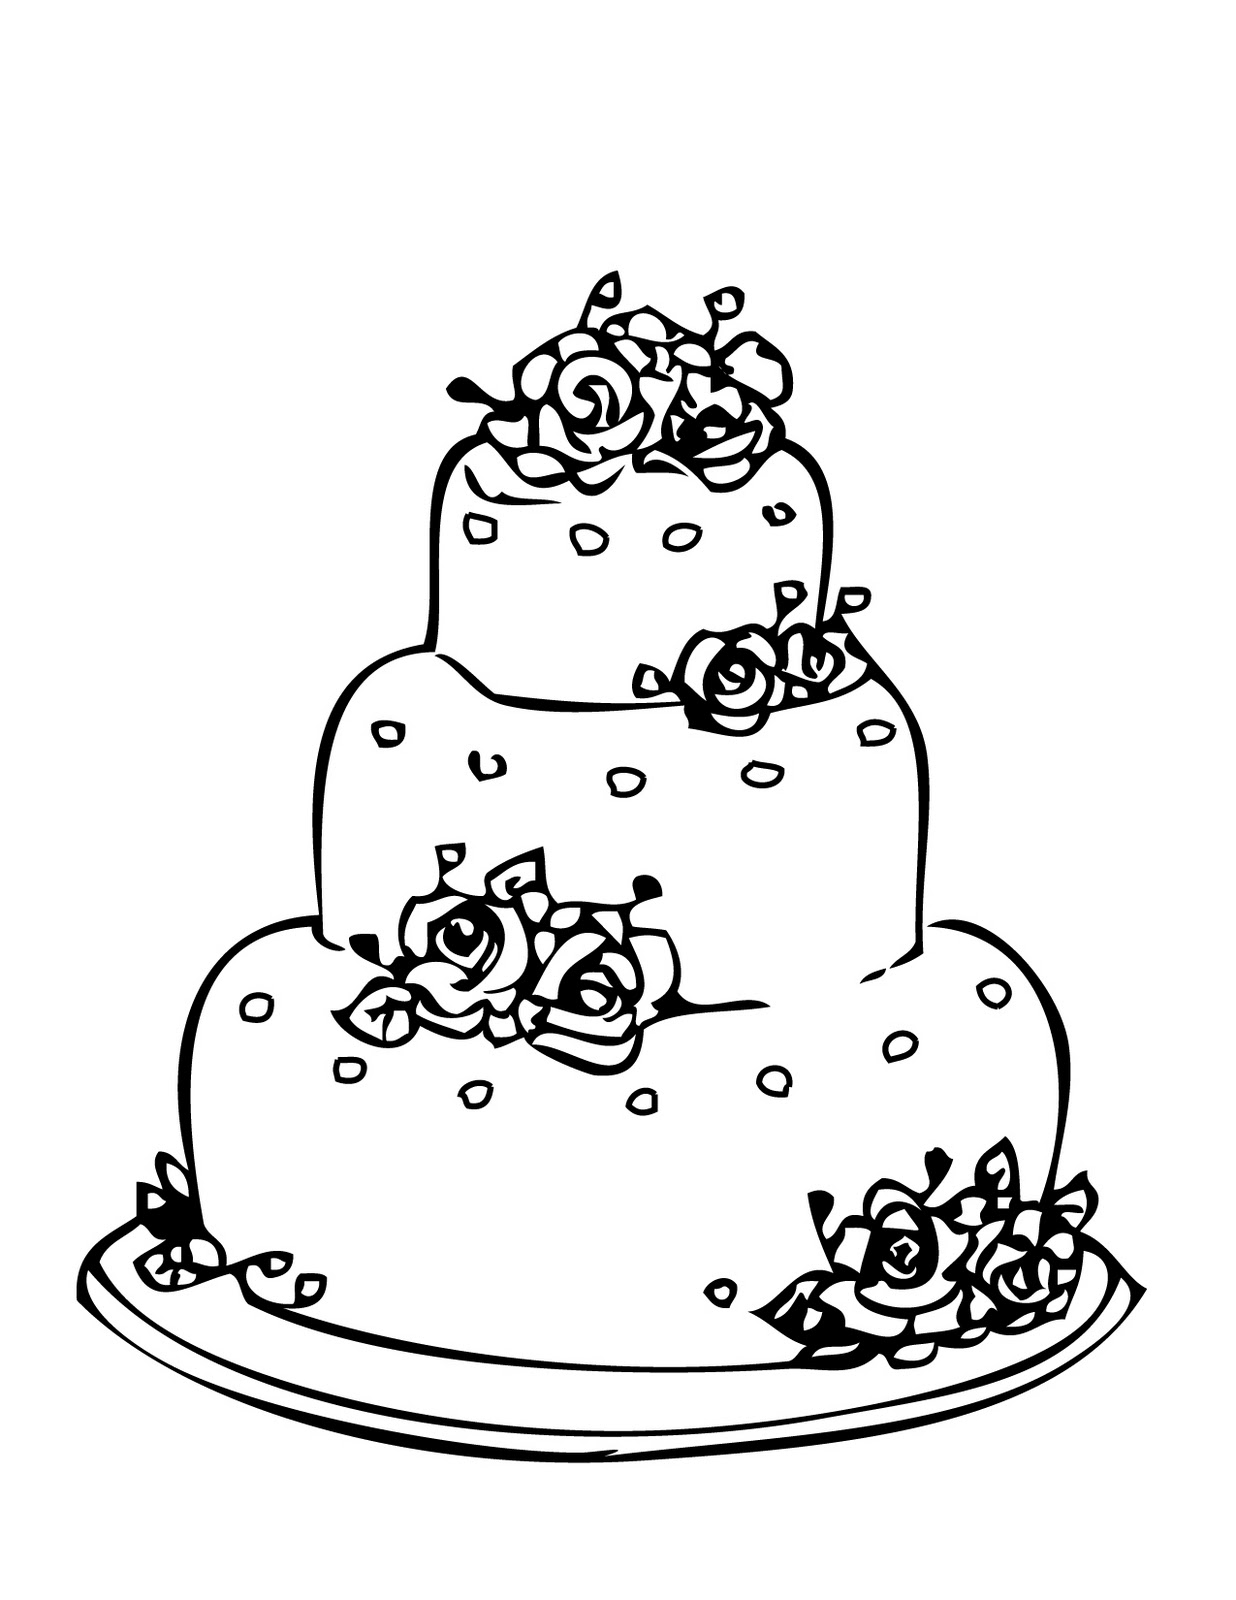 1236x1600 Wedding Cake Coloring Page For Drawing 1 Kimmiebee